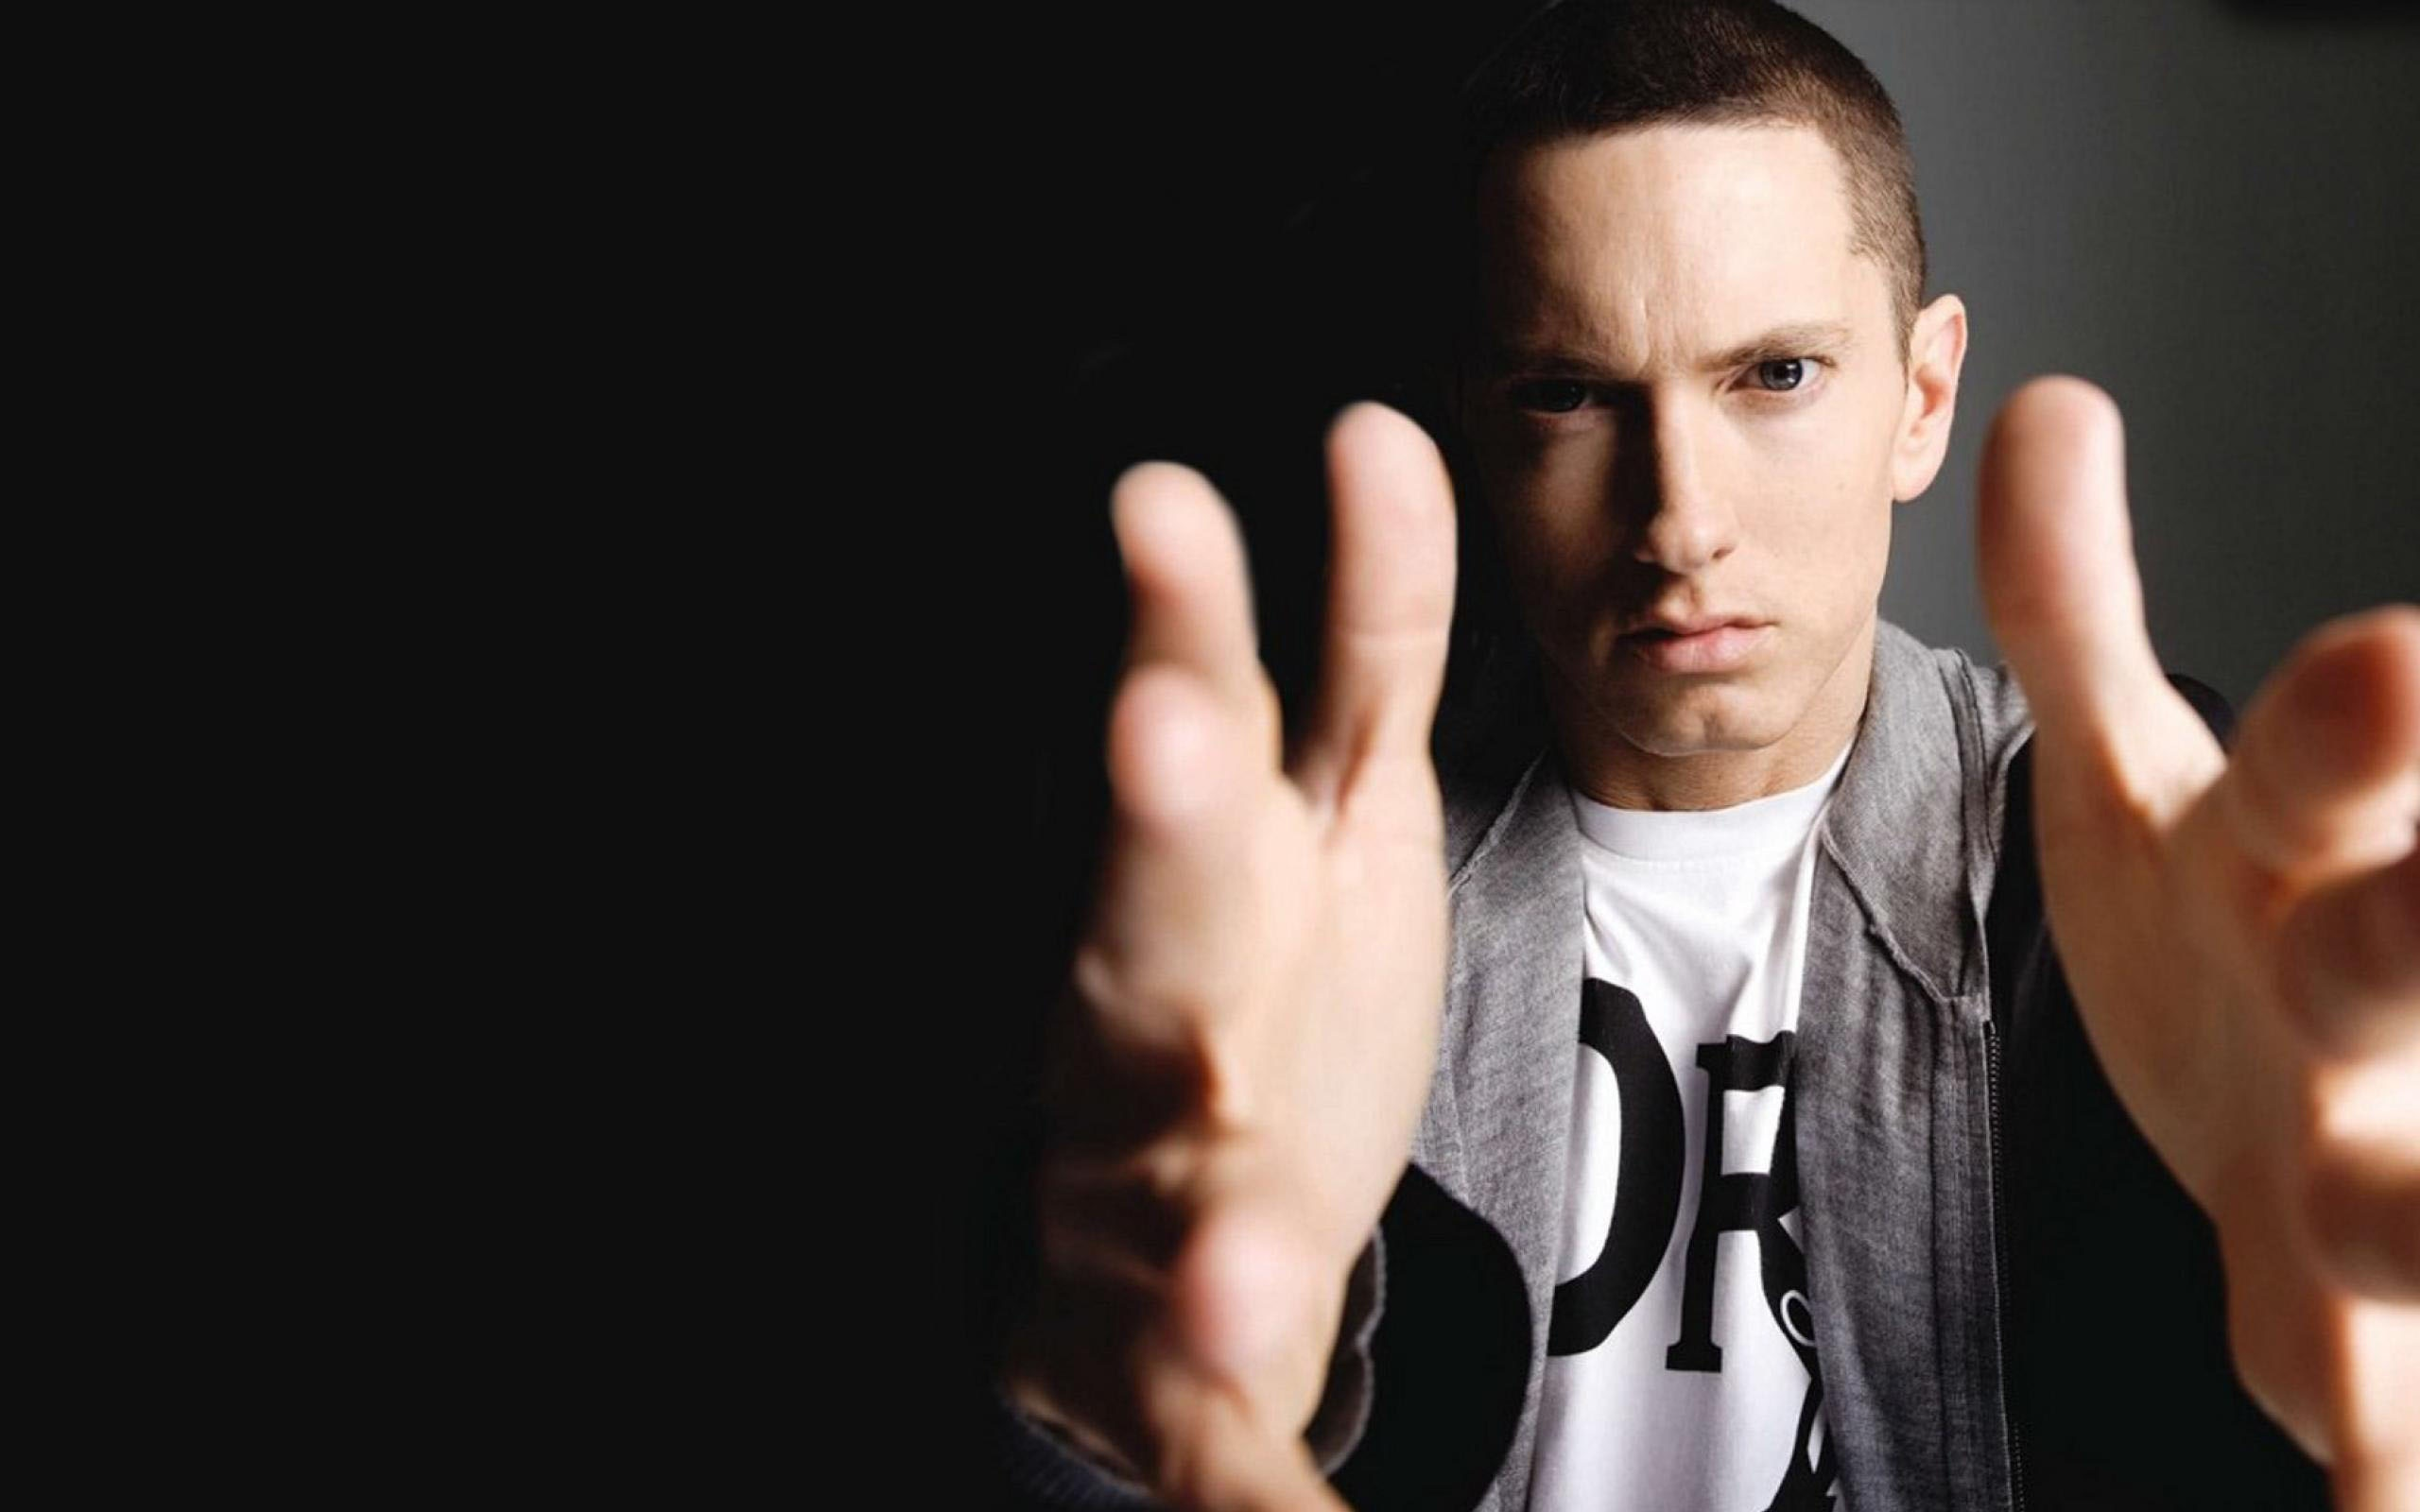 Eminem Wallpapers High Resolution and Quality Download